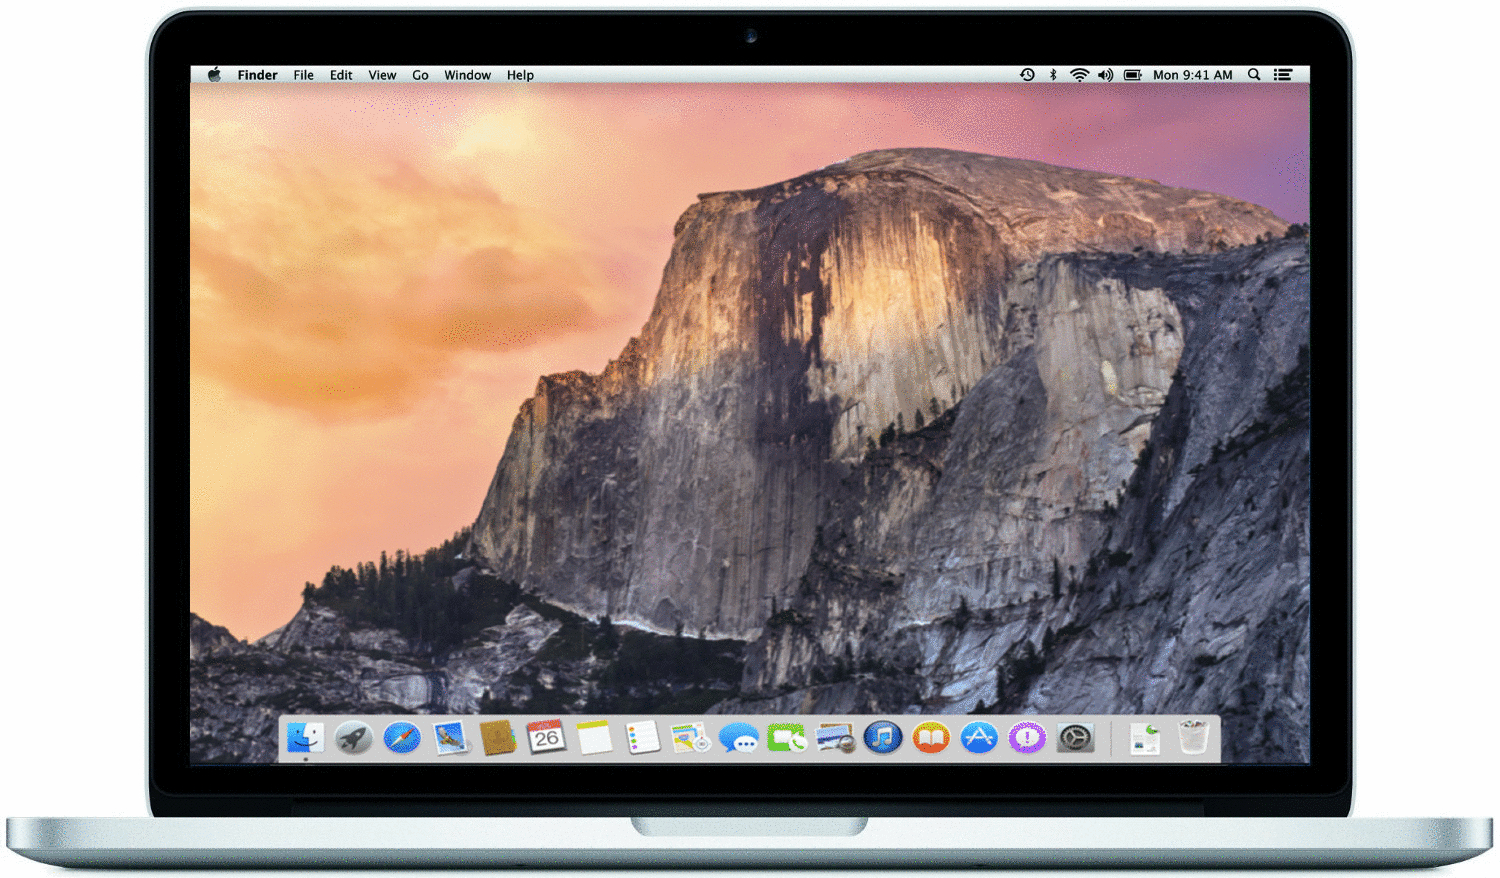 Apple MacBook Pro 15.4 (Retina Display) 2.2 GHz Intel Core i7 16 GB RAM 256 GB PCIe SSD [Mid 2015]